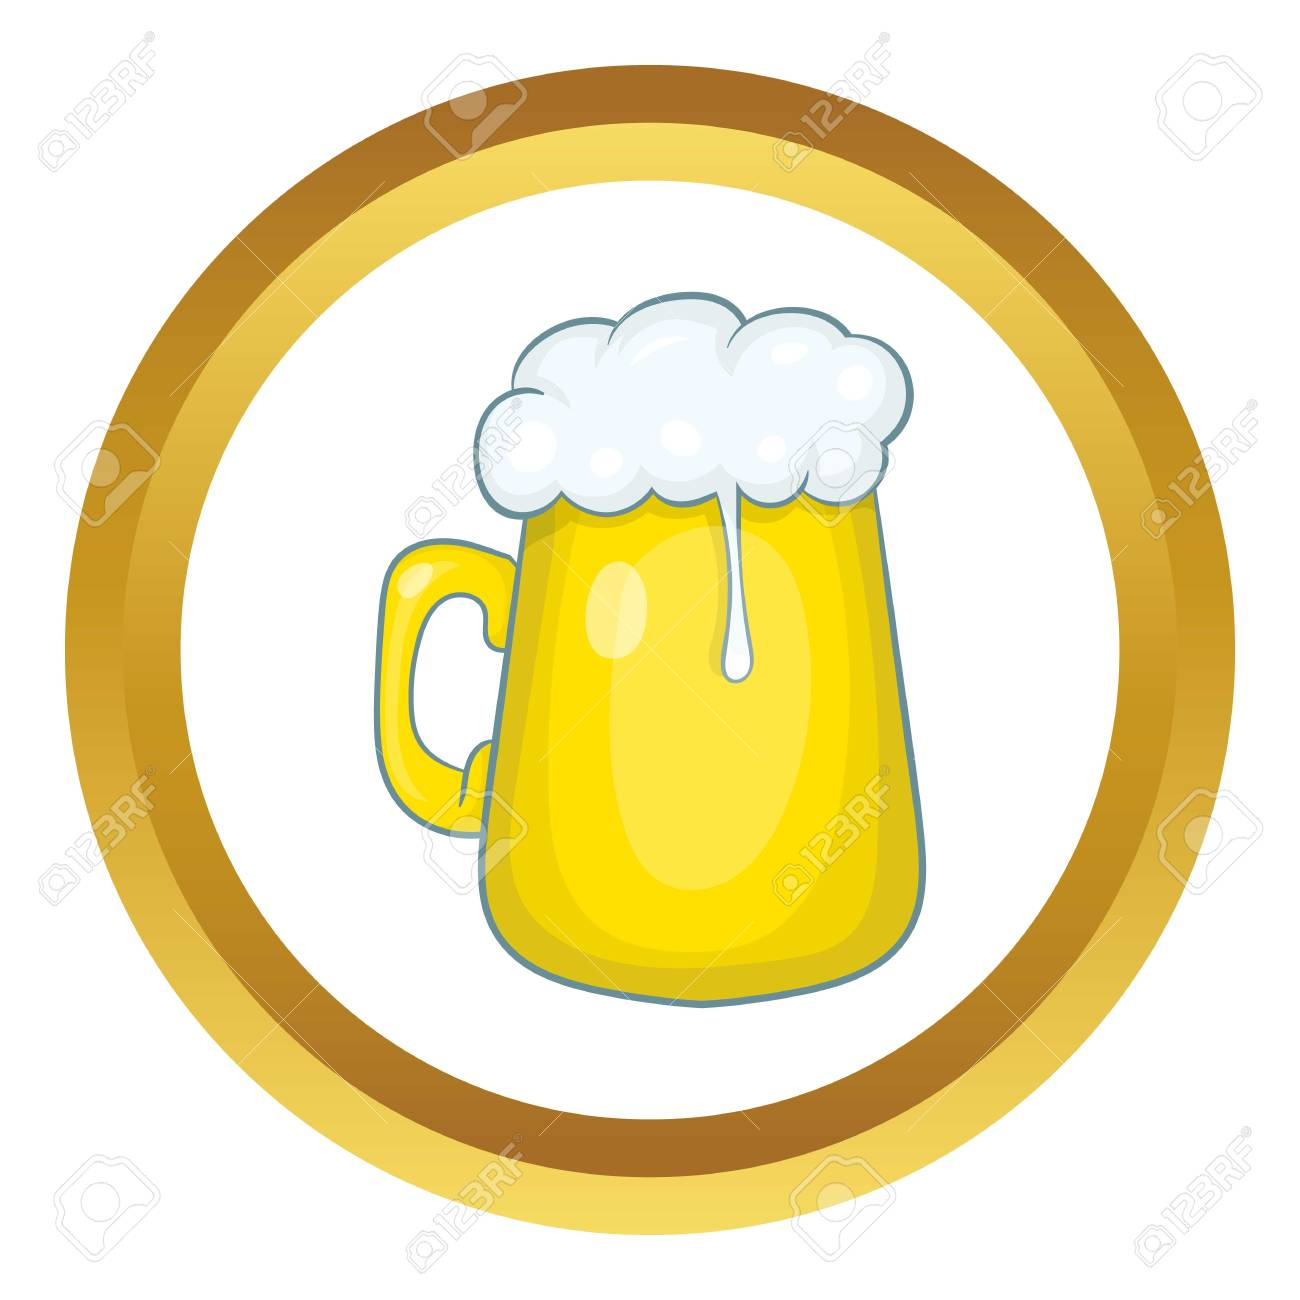 Glass Mug Of Beer Vector Icon In Golden Circle Cartoon Style